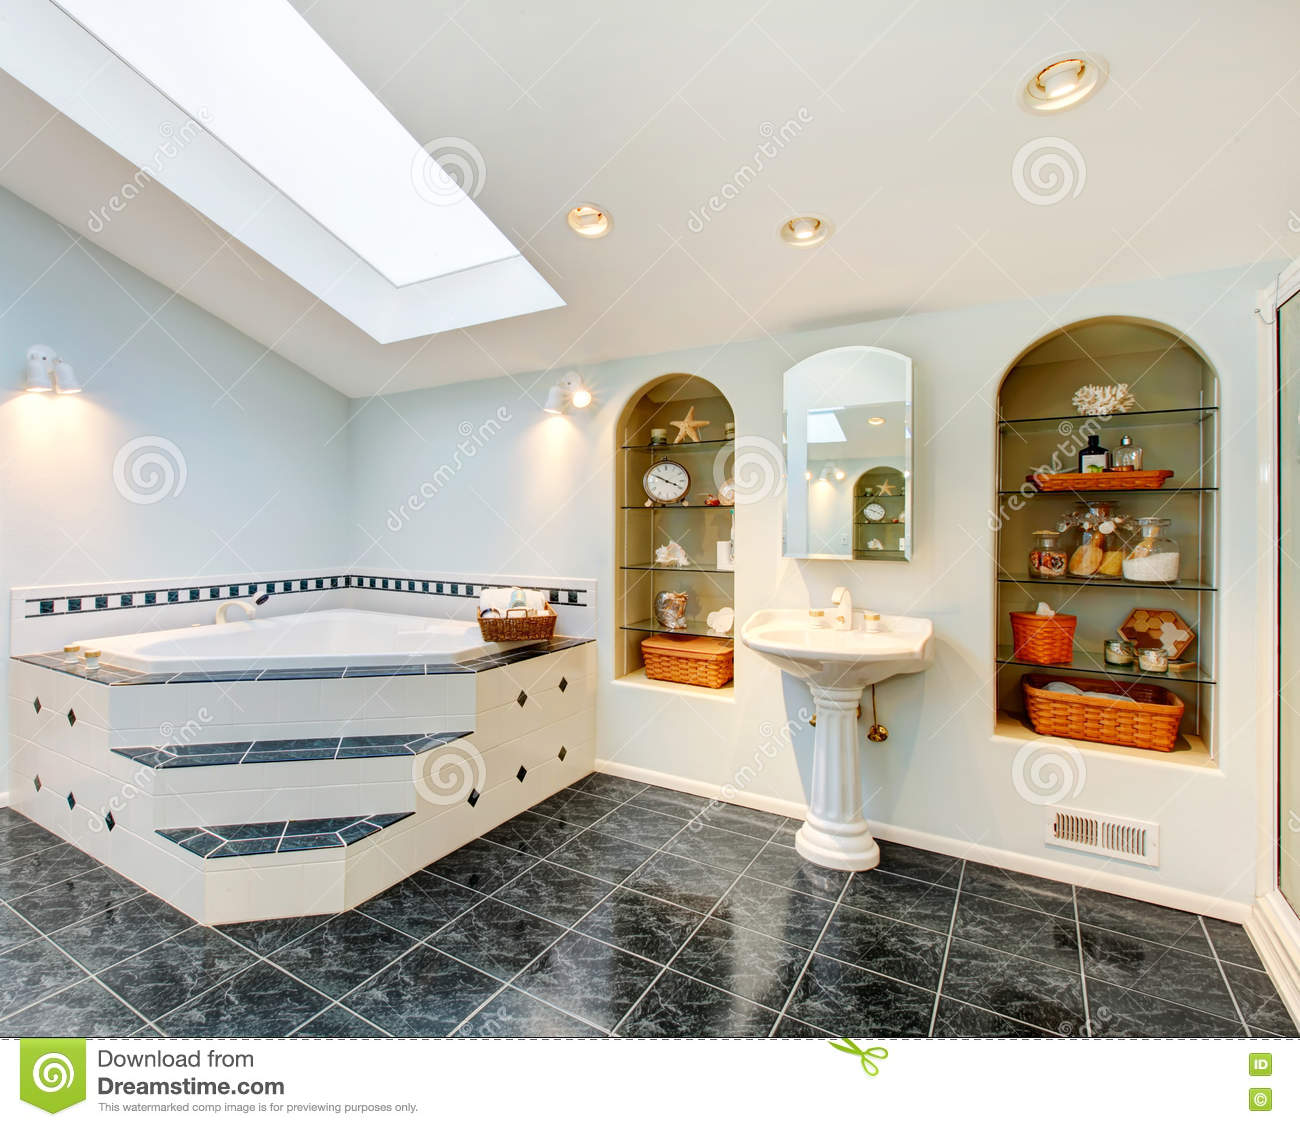 Master Bathroom With Blue Marble Tile Floor And Corner Bath Tub Stock Image Image 75361577